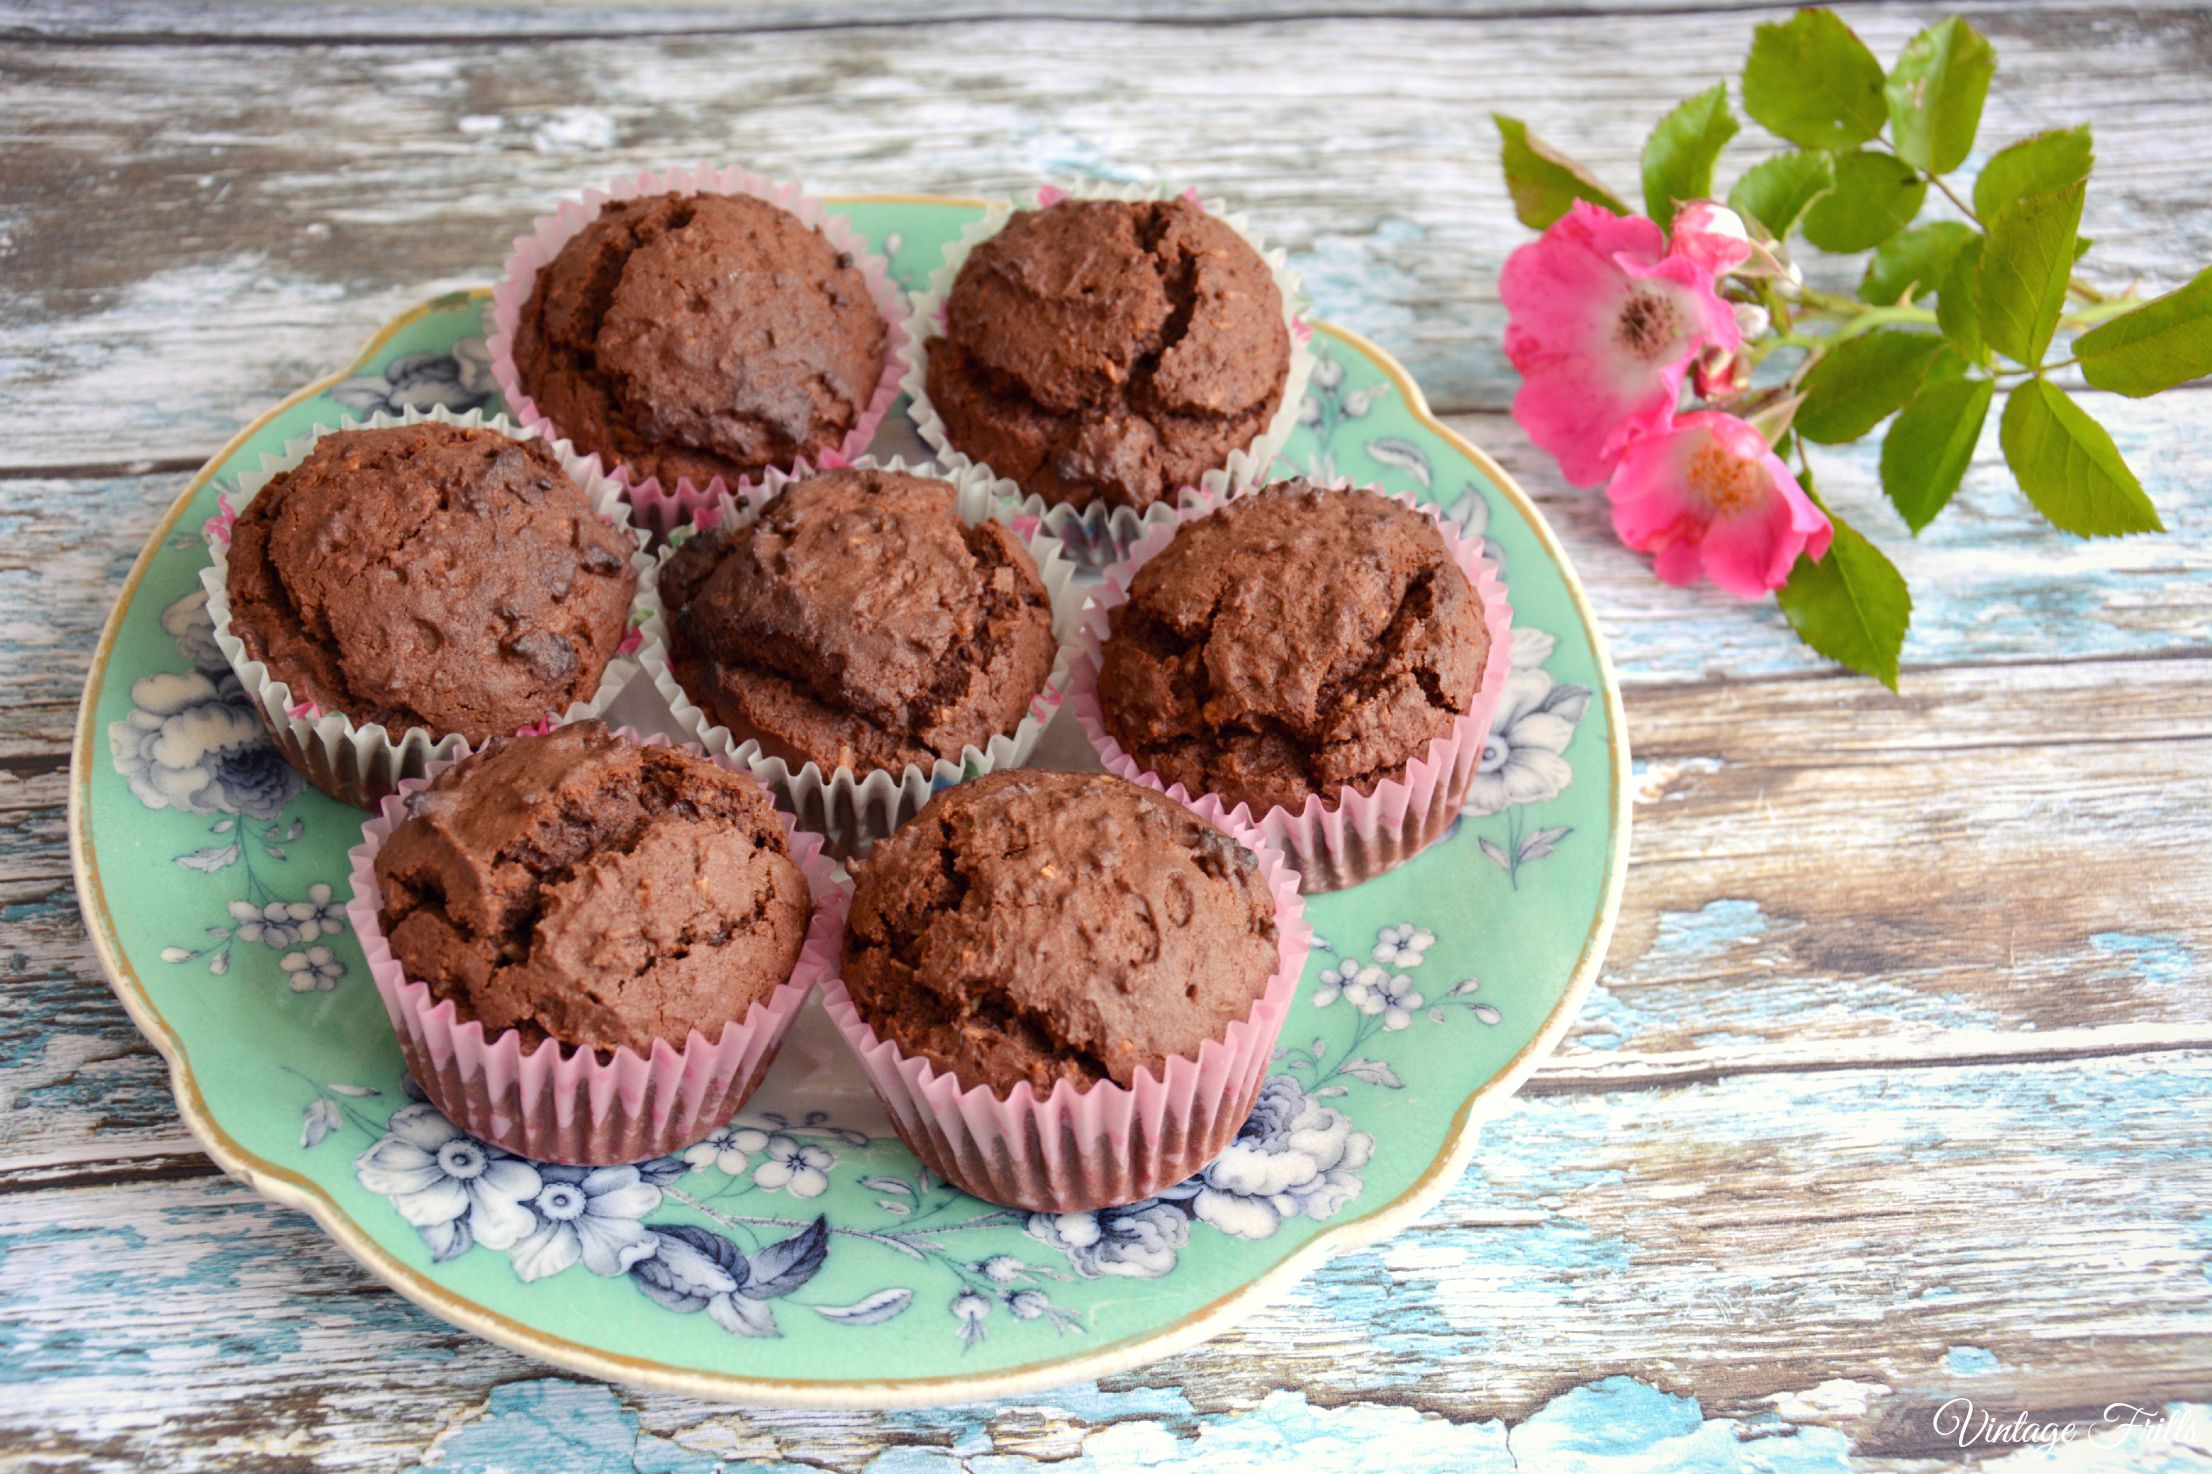 Vintage Chocolate Coconut Cakes